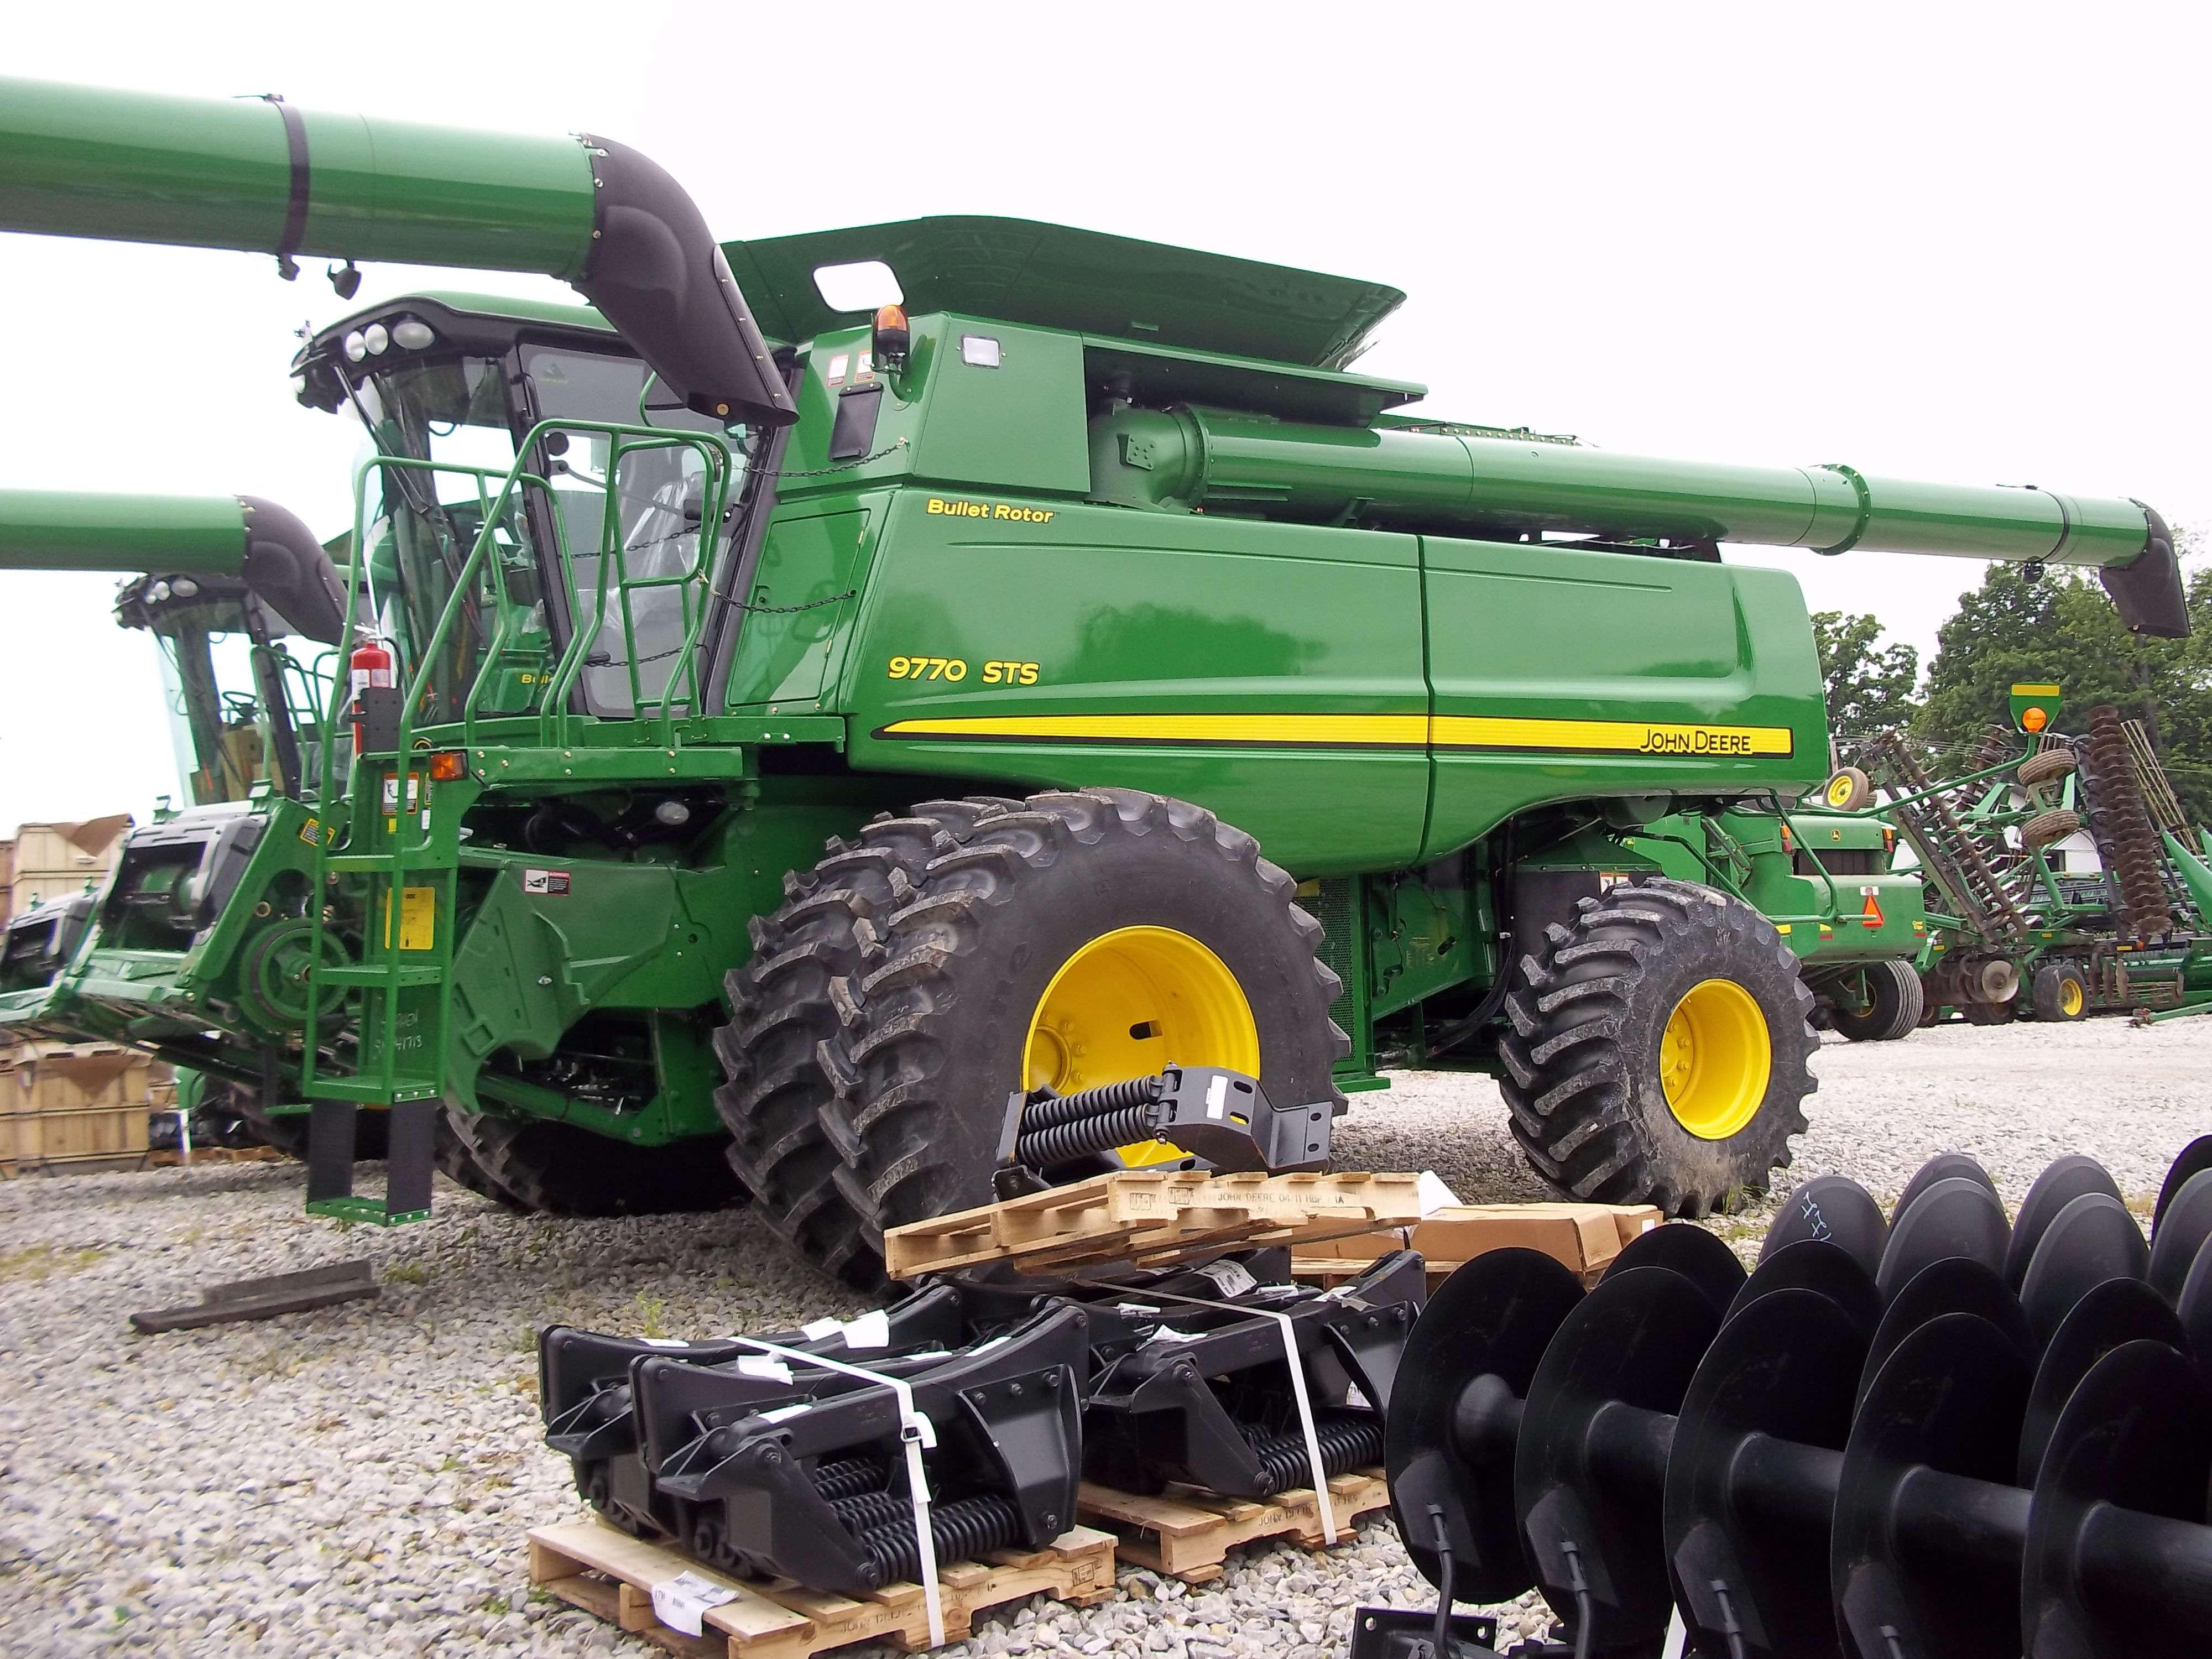 John Deere 9770 STS Bullet Rotor from May 2011